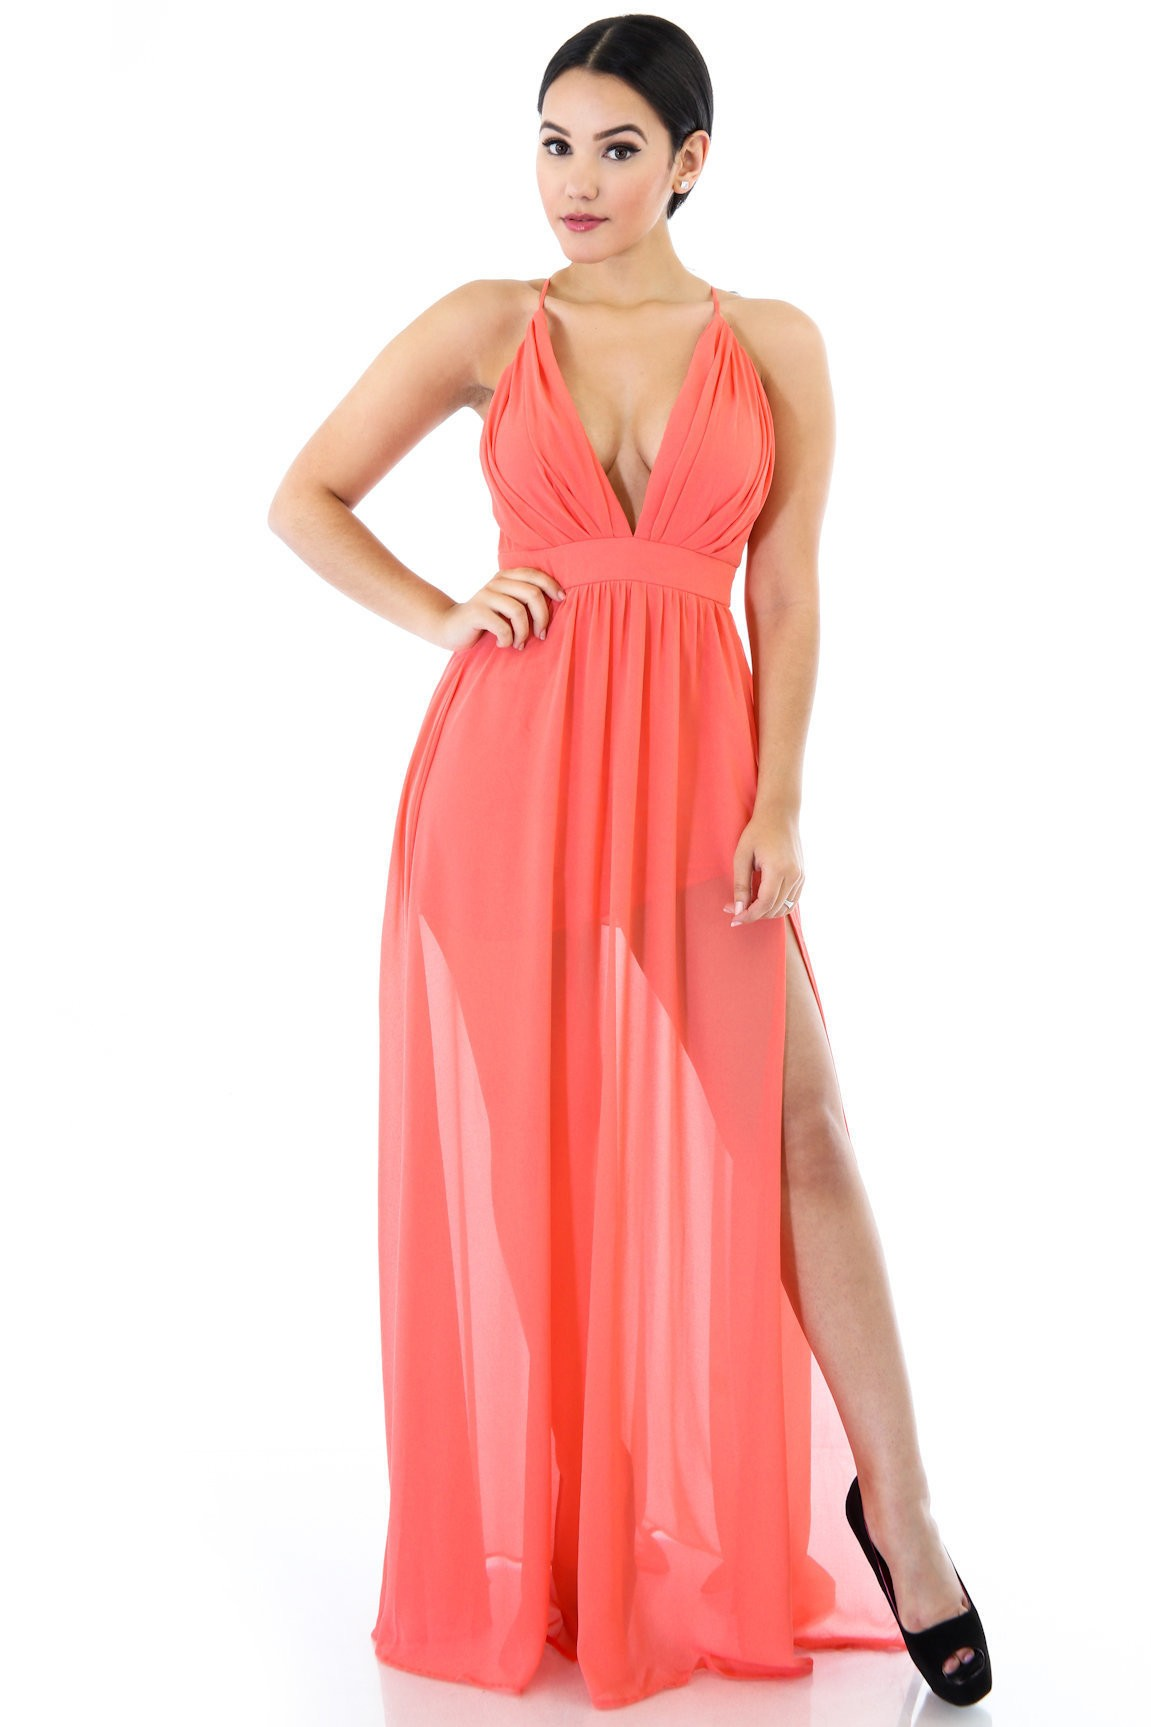 Astrid Beauty Maxi Dress